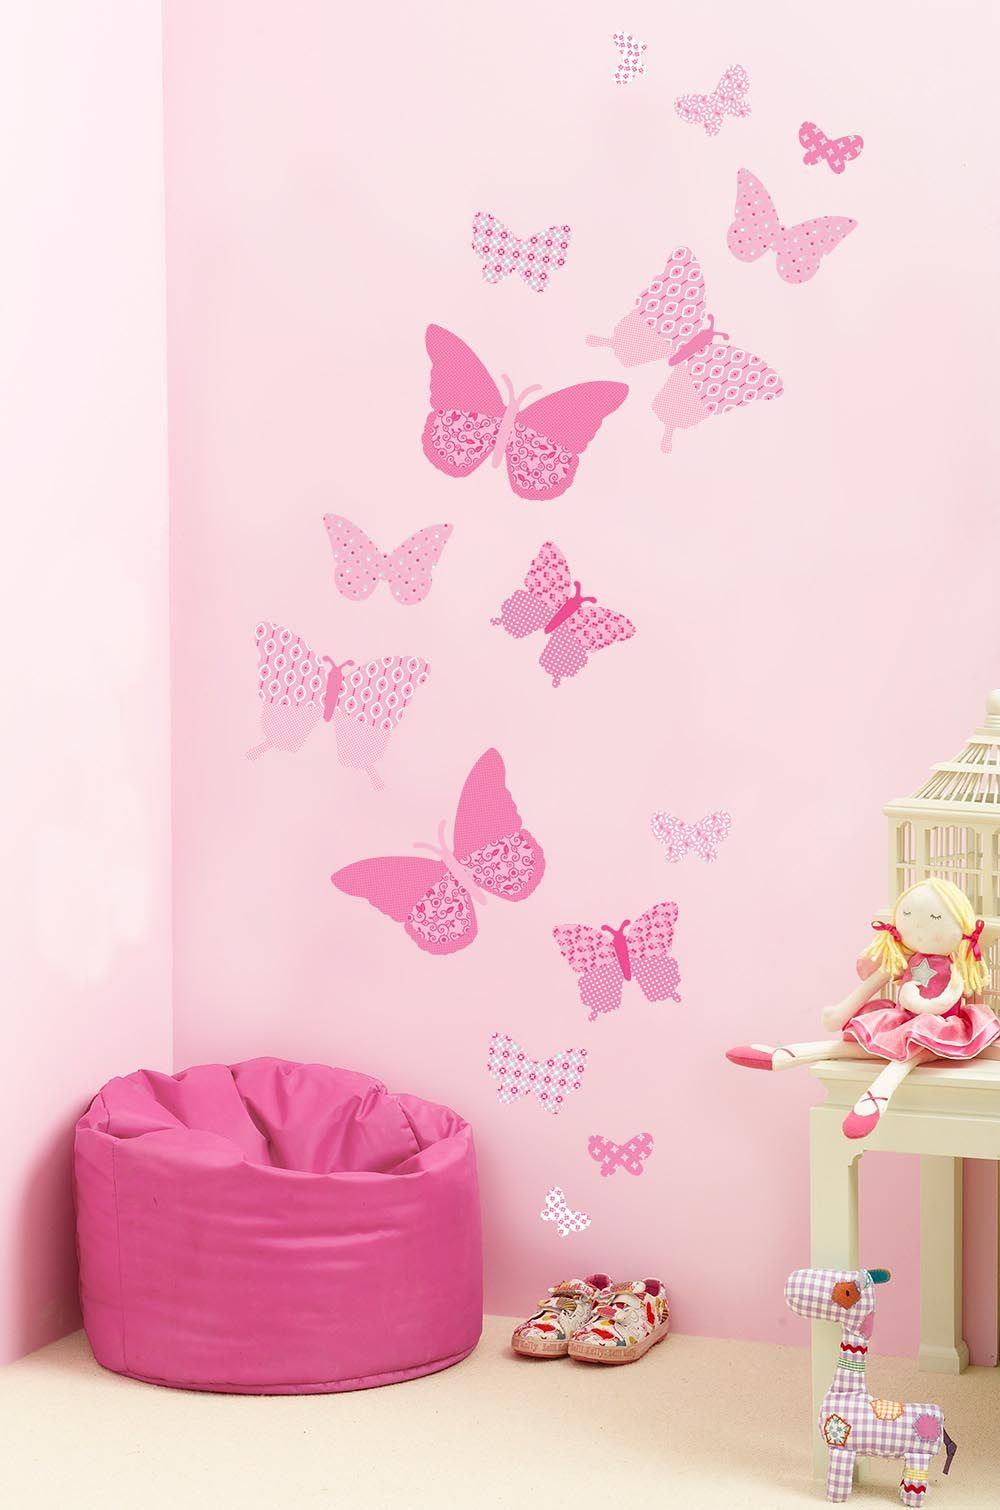 Vintage butterfly wall stickers pink house 39 s for Stickers habitacion nina